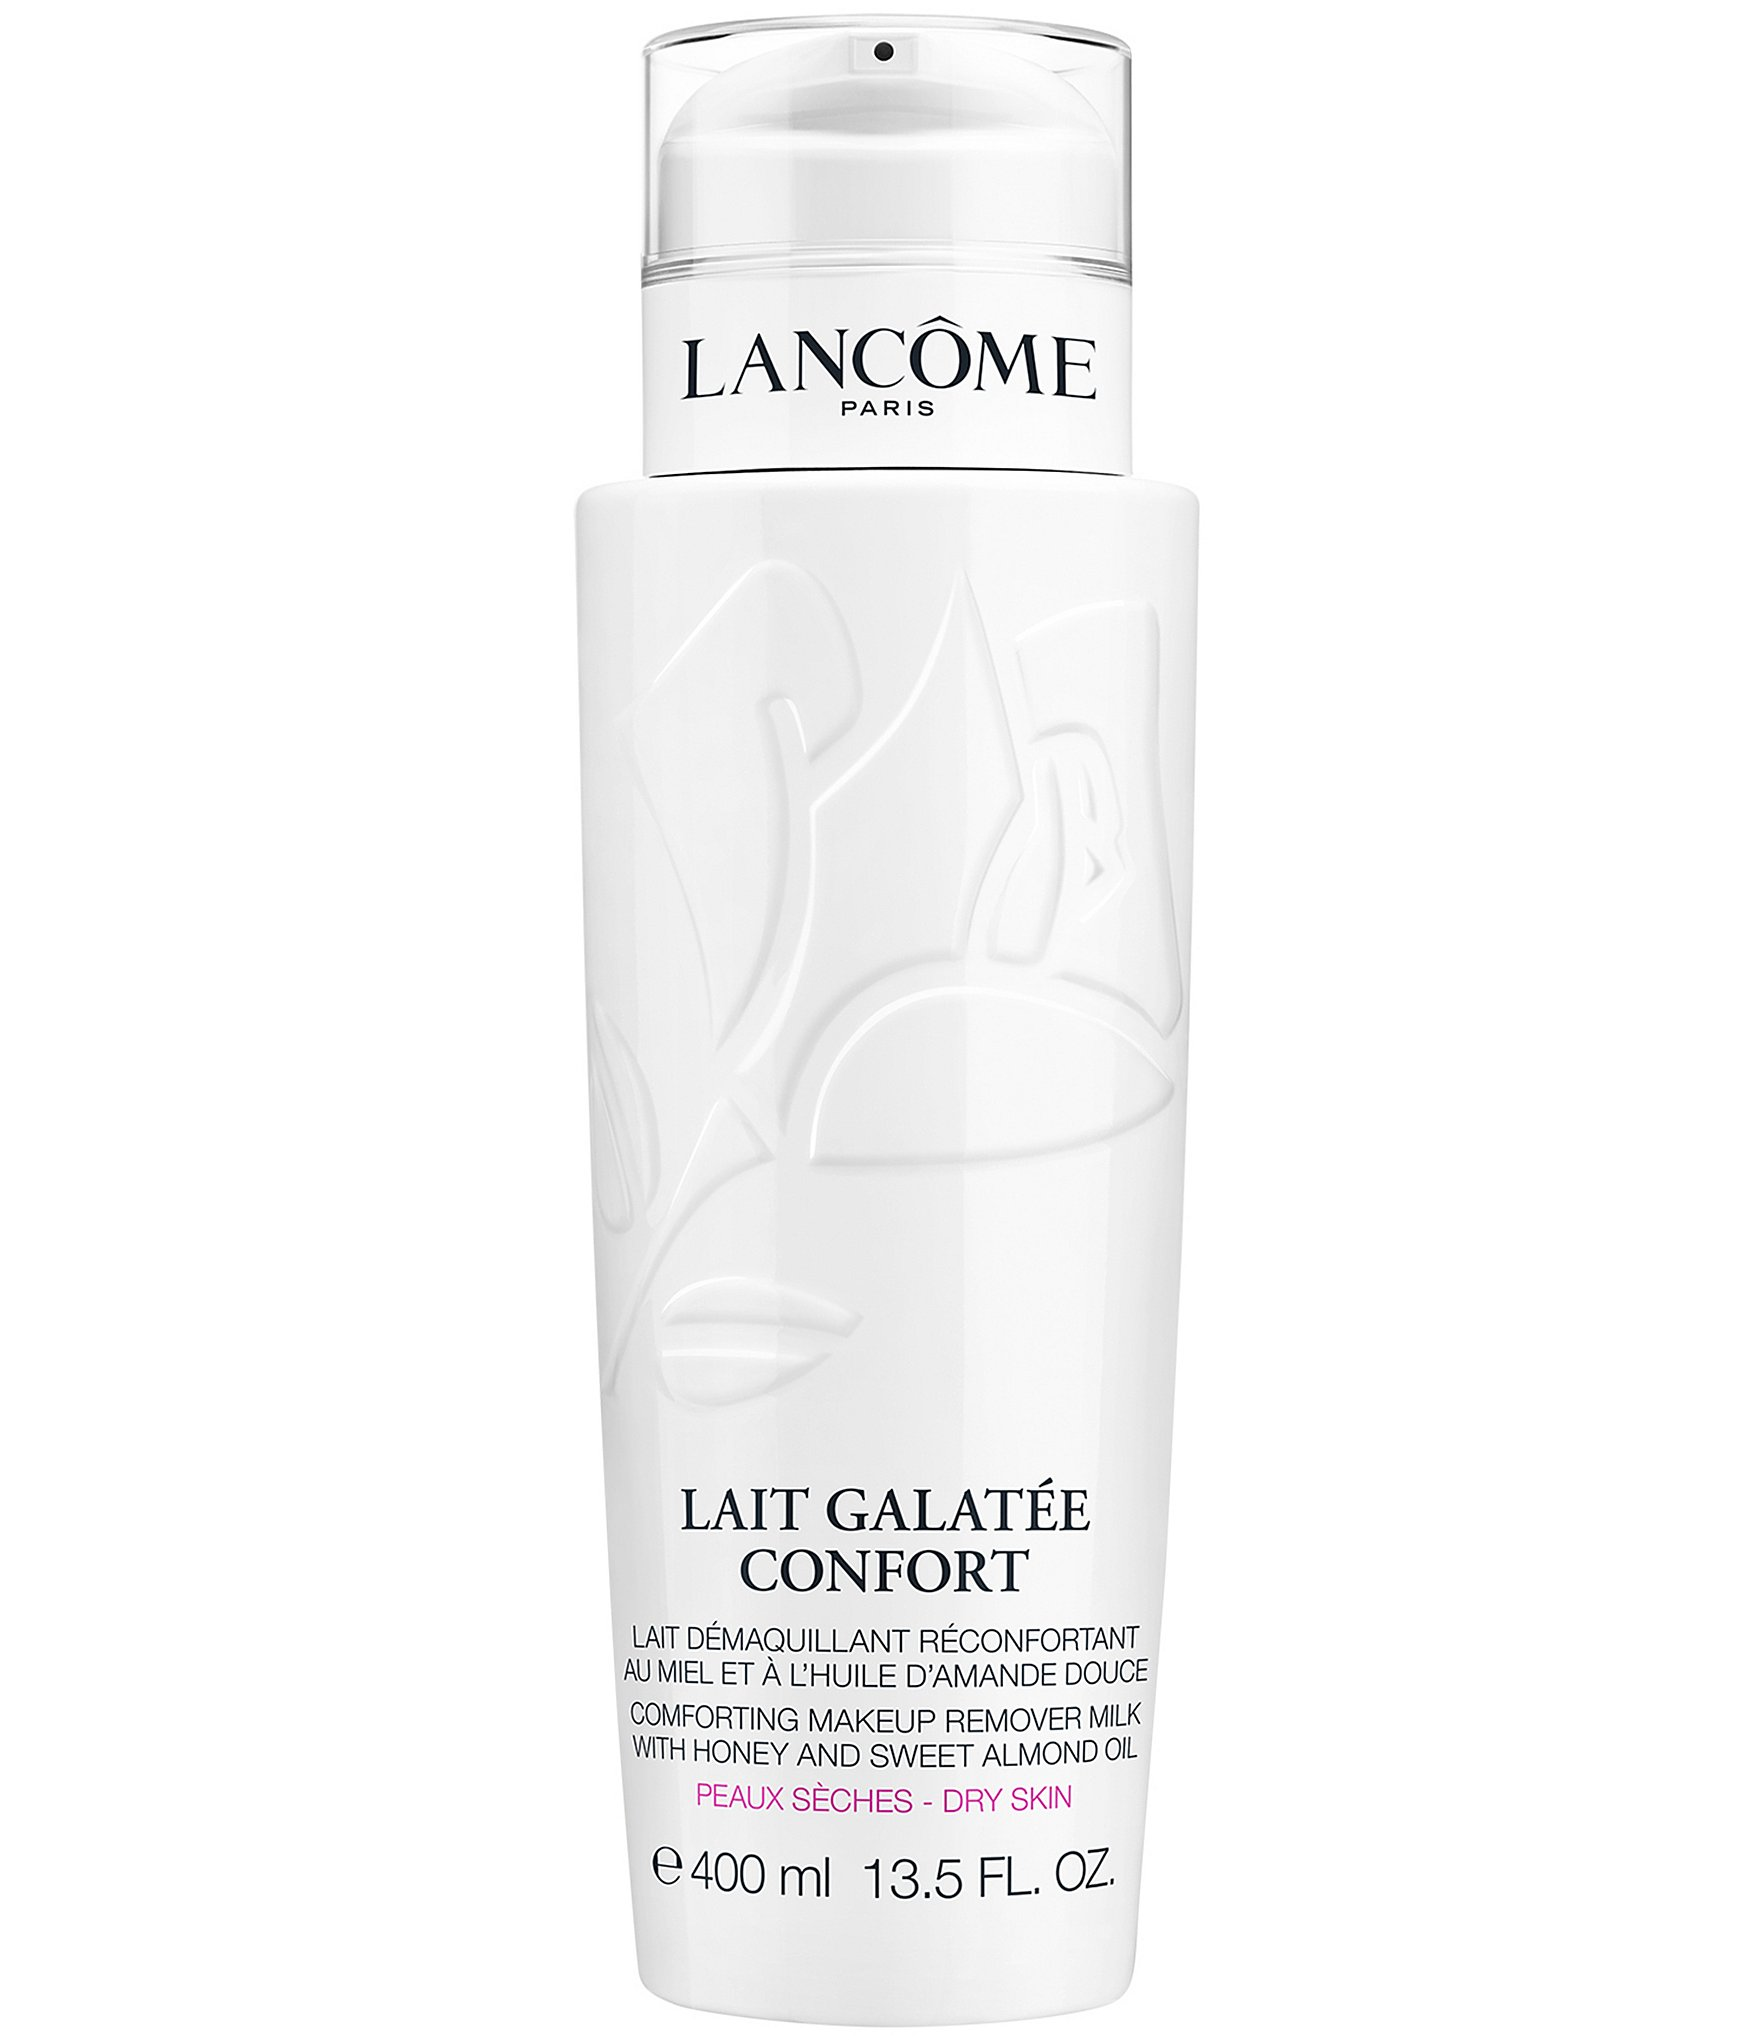 Lancome Galatee Confort Comforting Milky Creme Cleanser Dillards